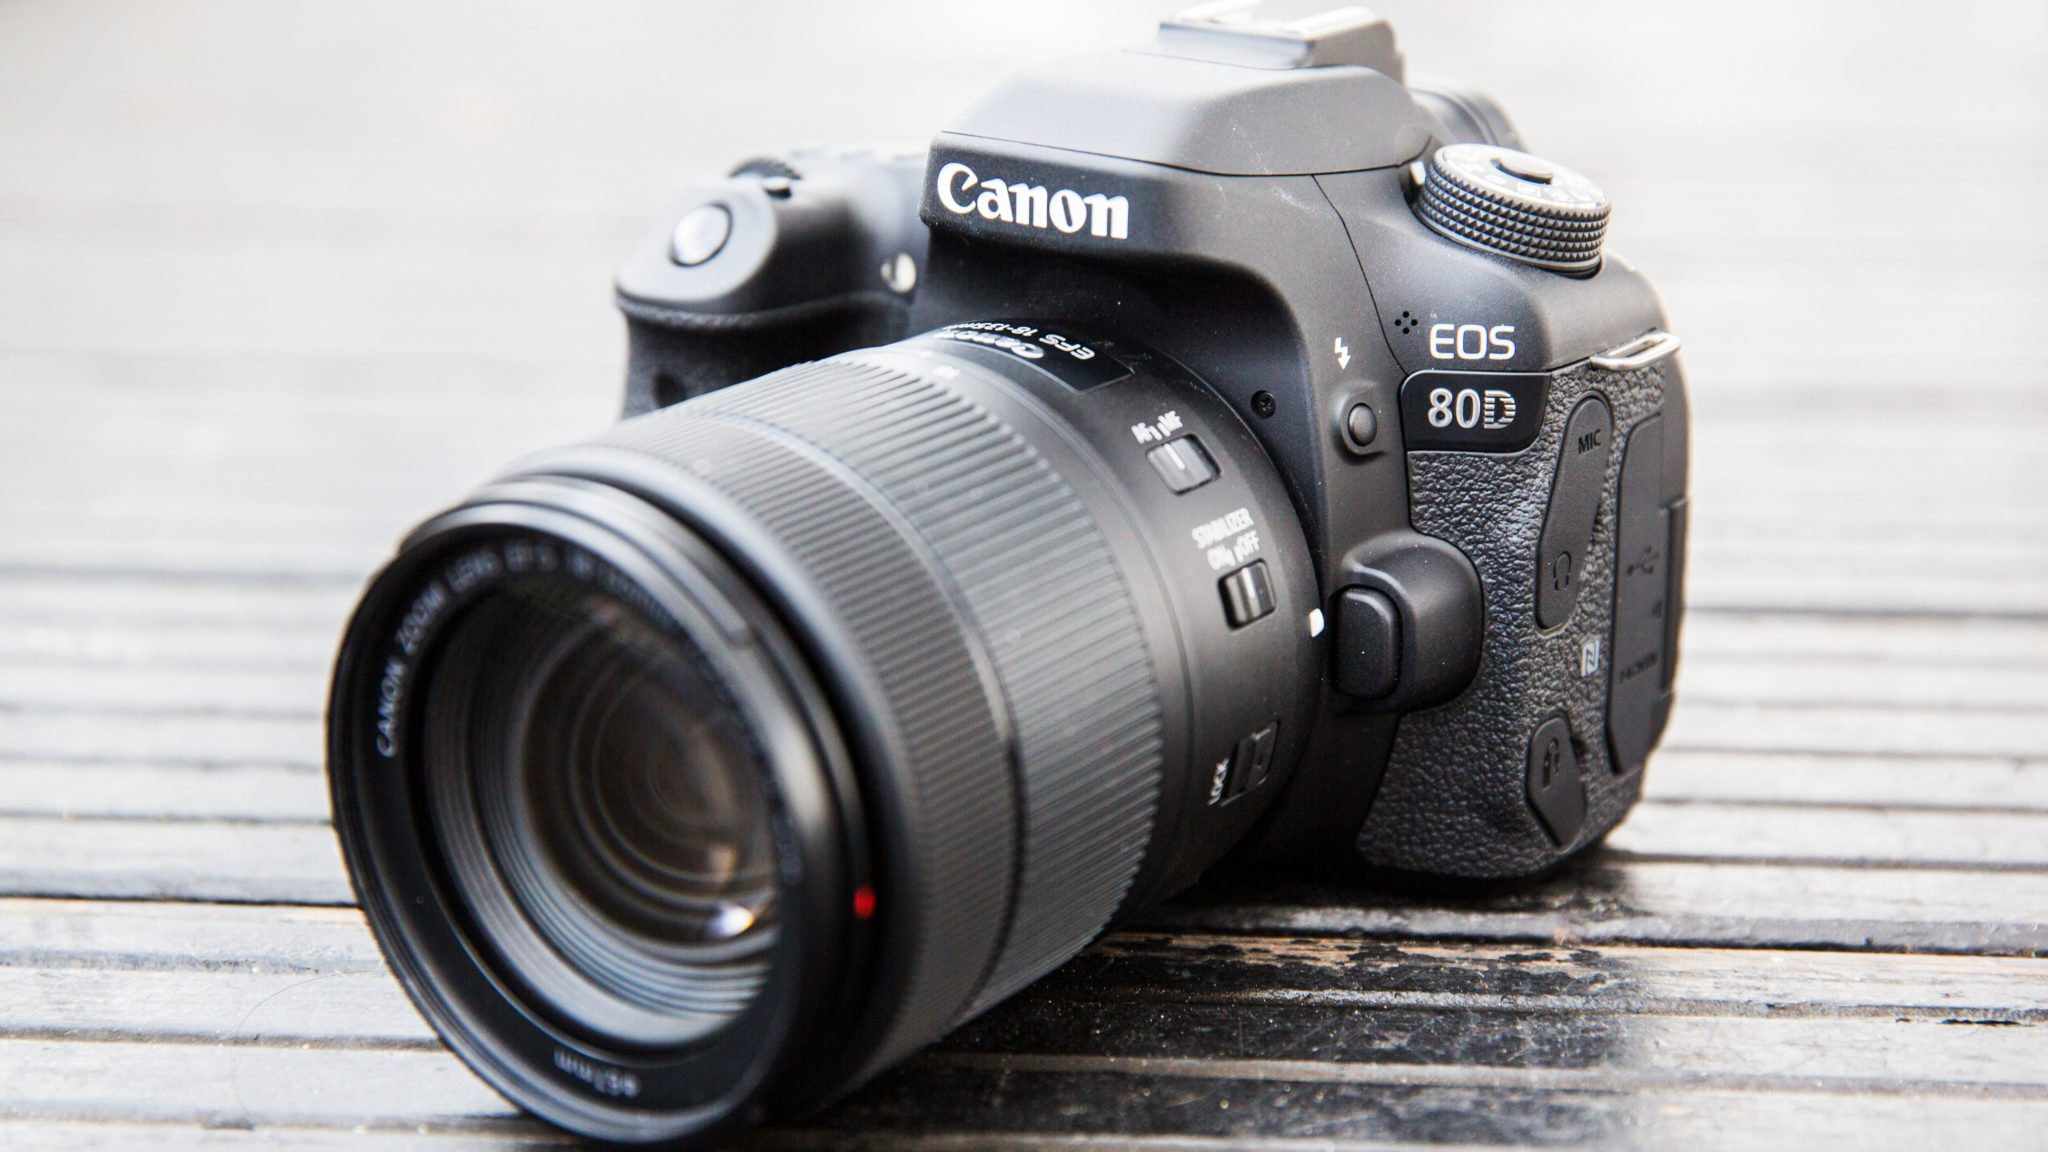 Canon EOS 80D – compact, digital SLR for exploring the new arena of photography